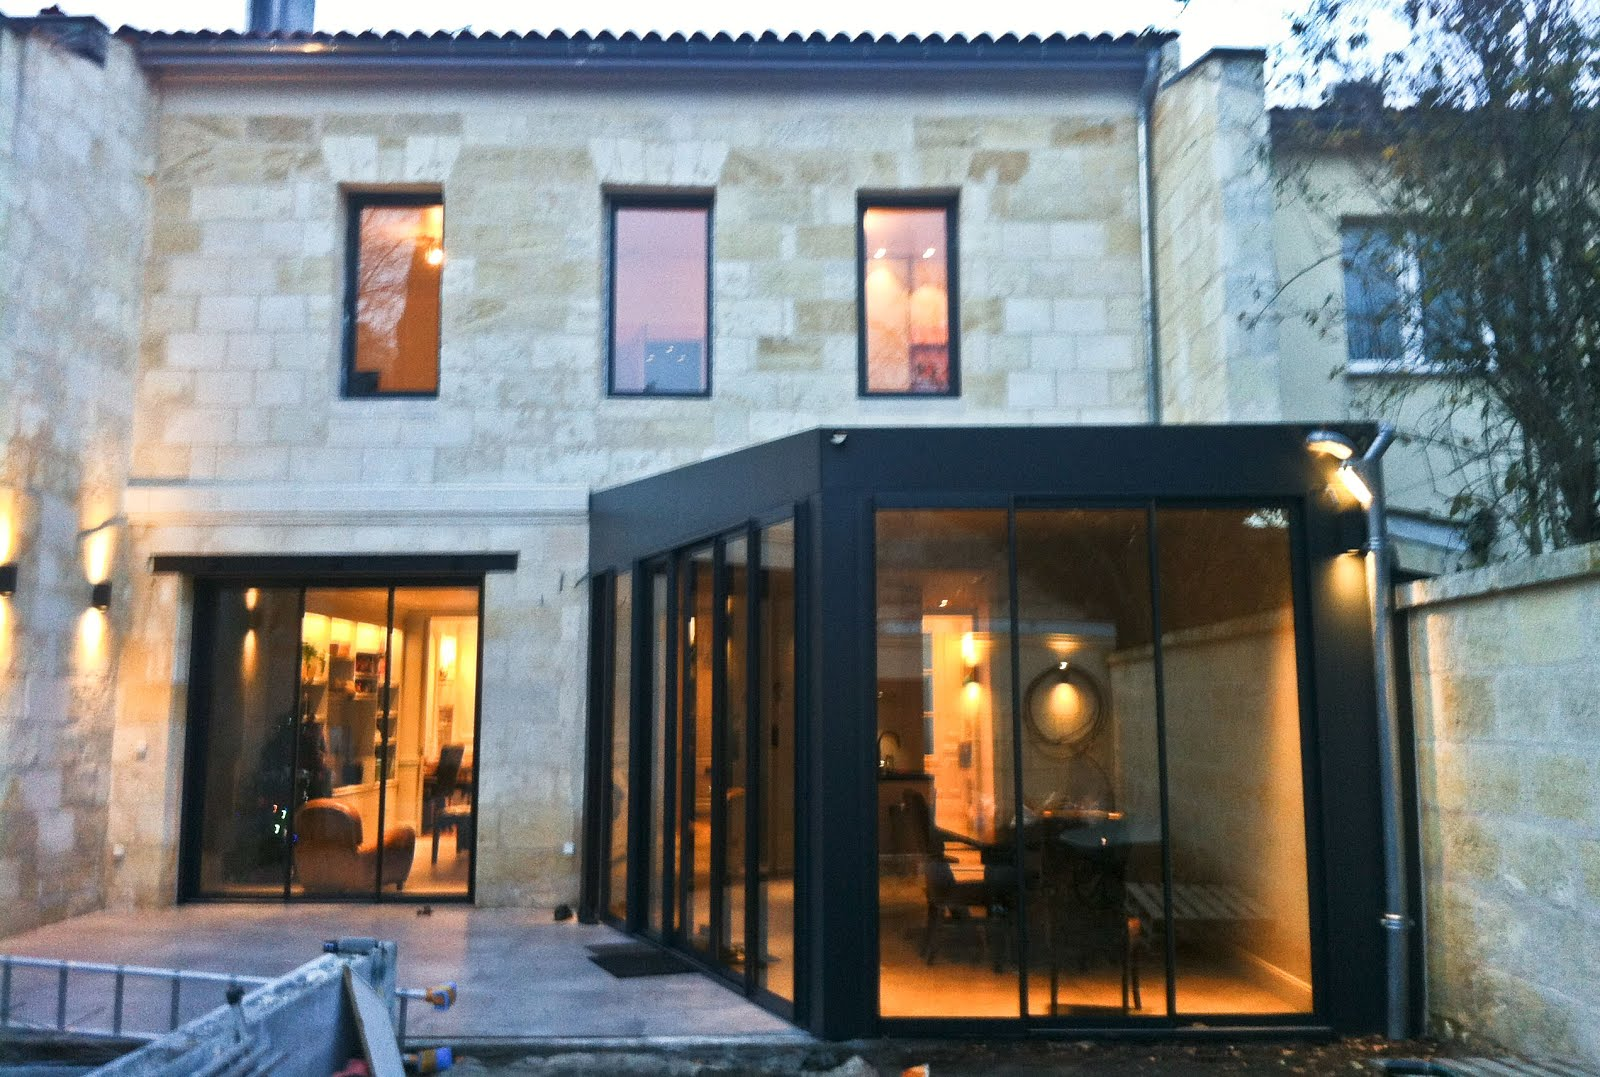 Renovation echoppe bordelaise projet choppe bordeaux for Maison architecte interieur